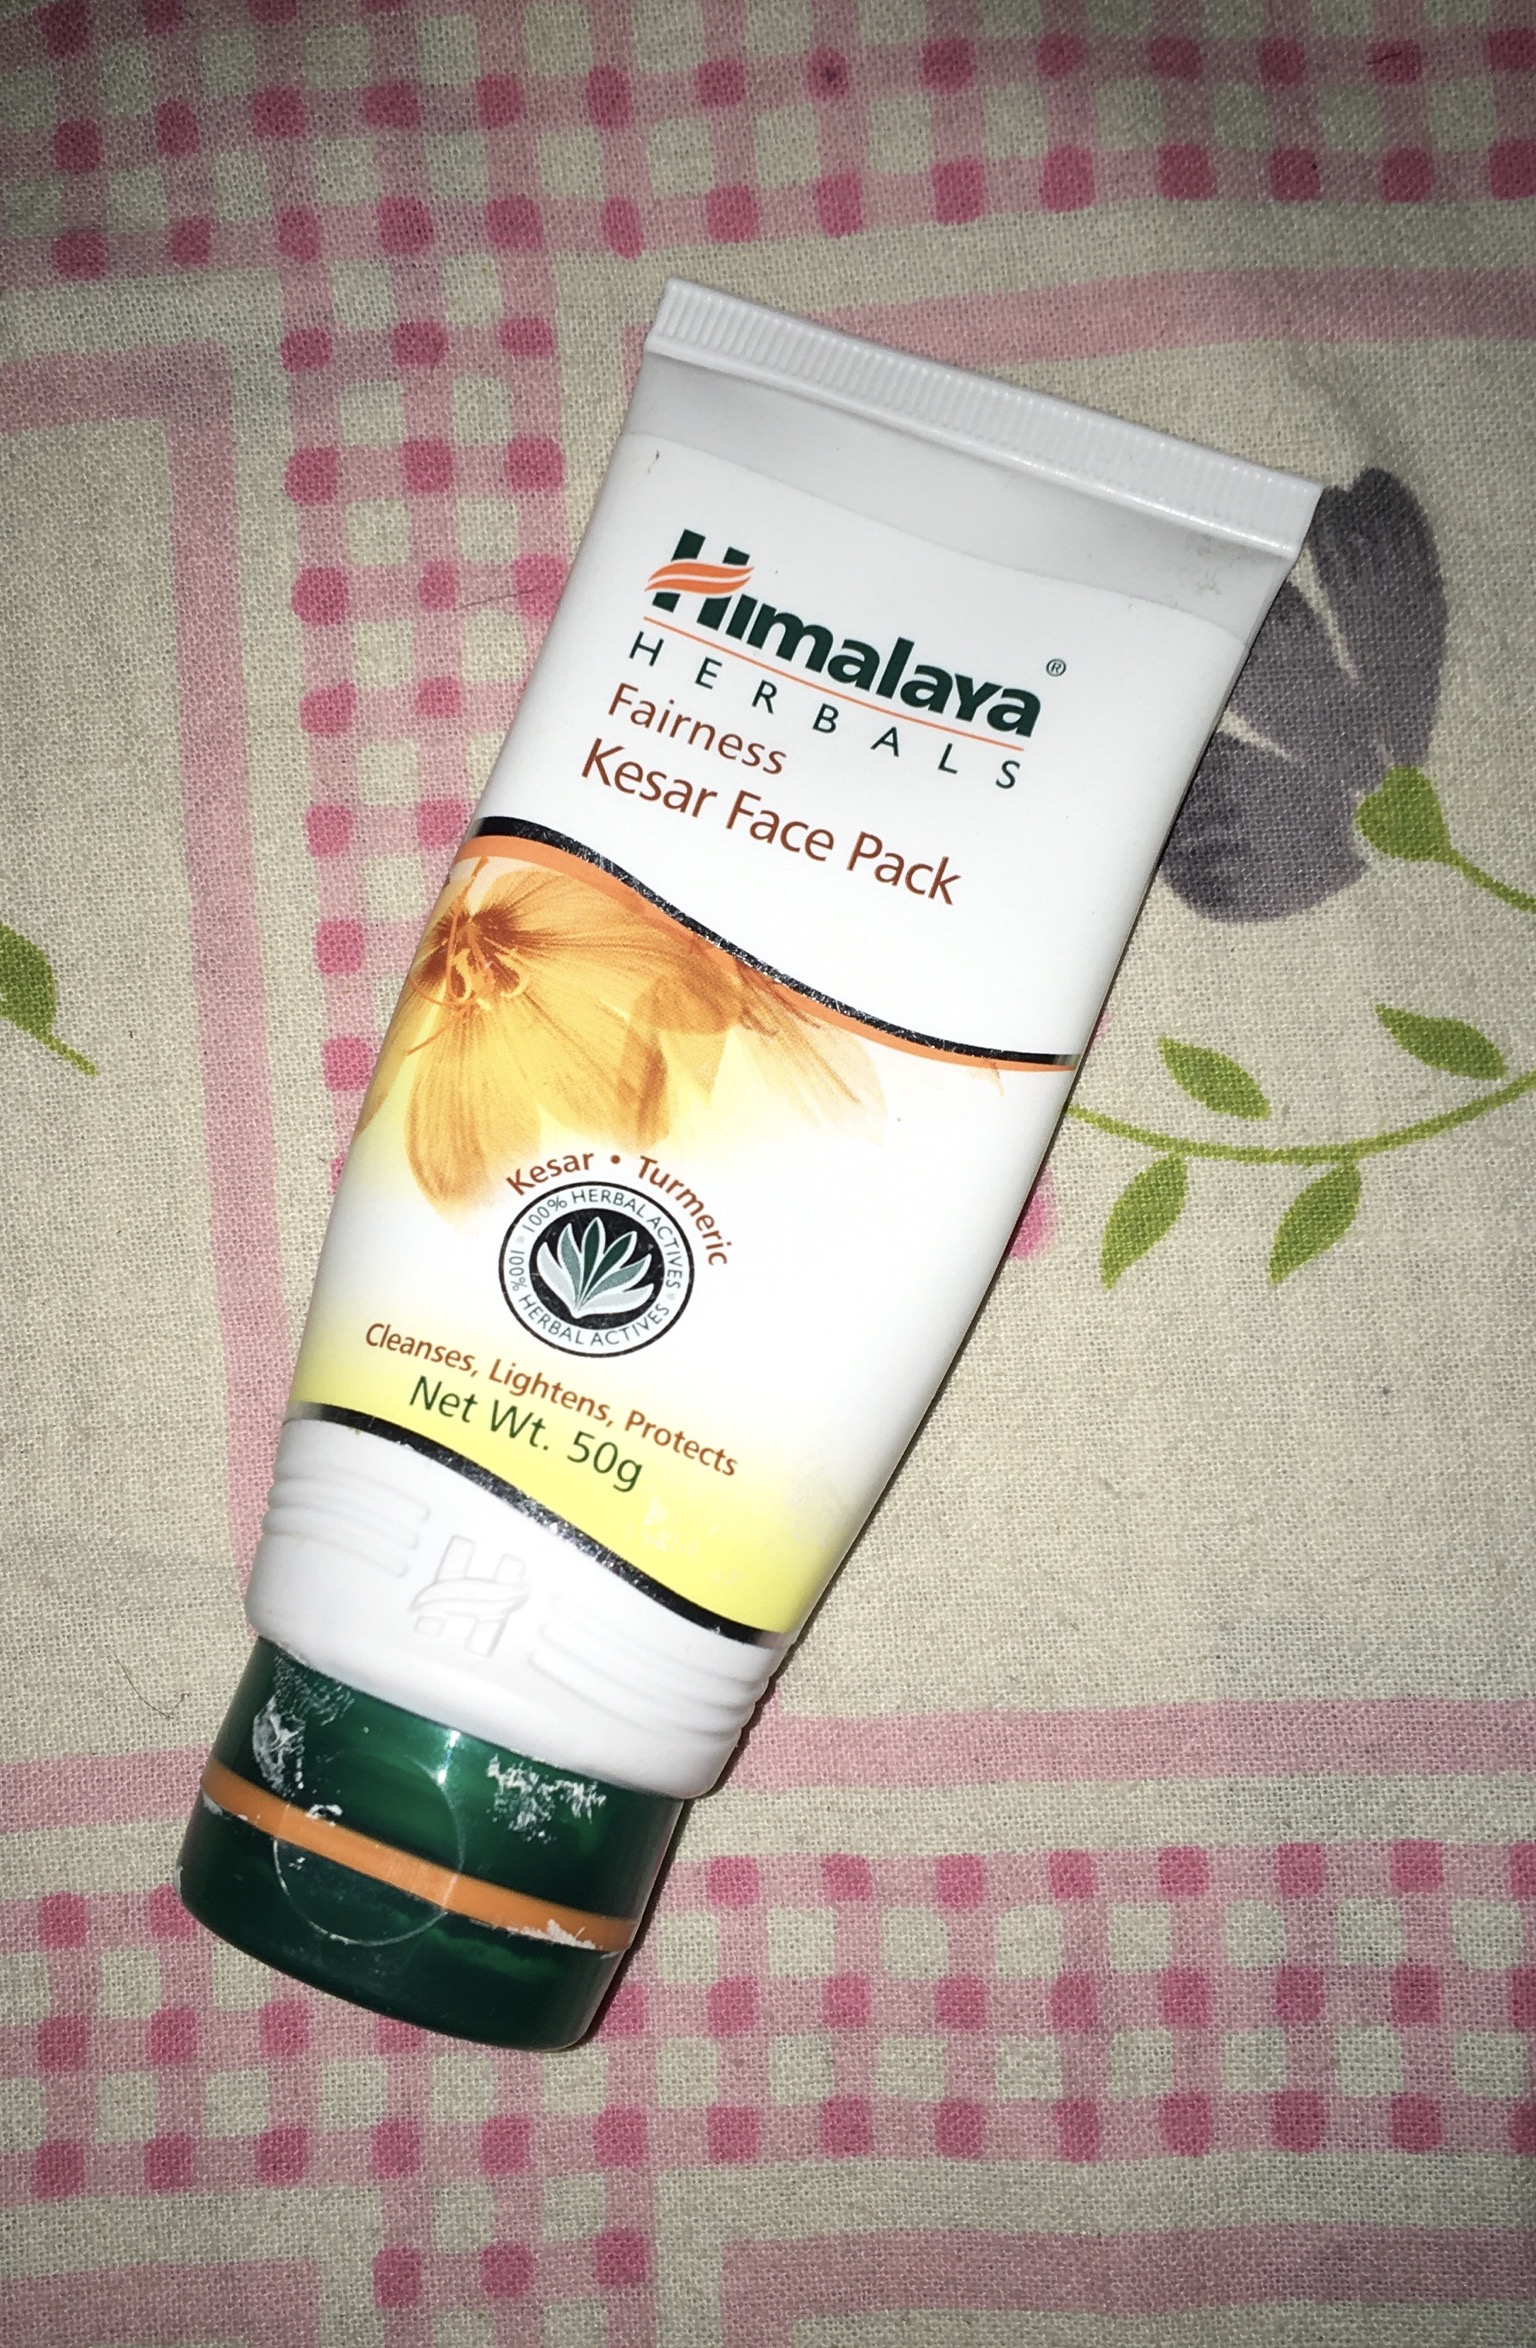 Himalaya Herbals Fairness Kesar Face Pack-Himalaya Kesar Face Pack-By lata_